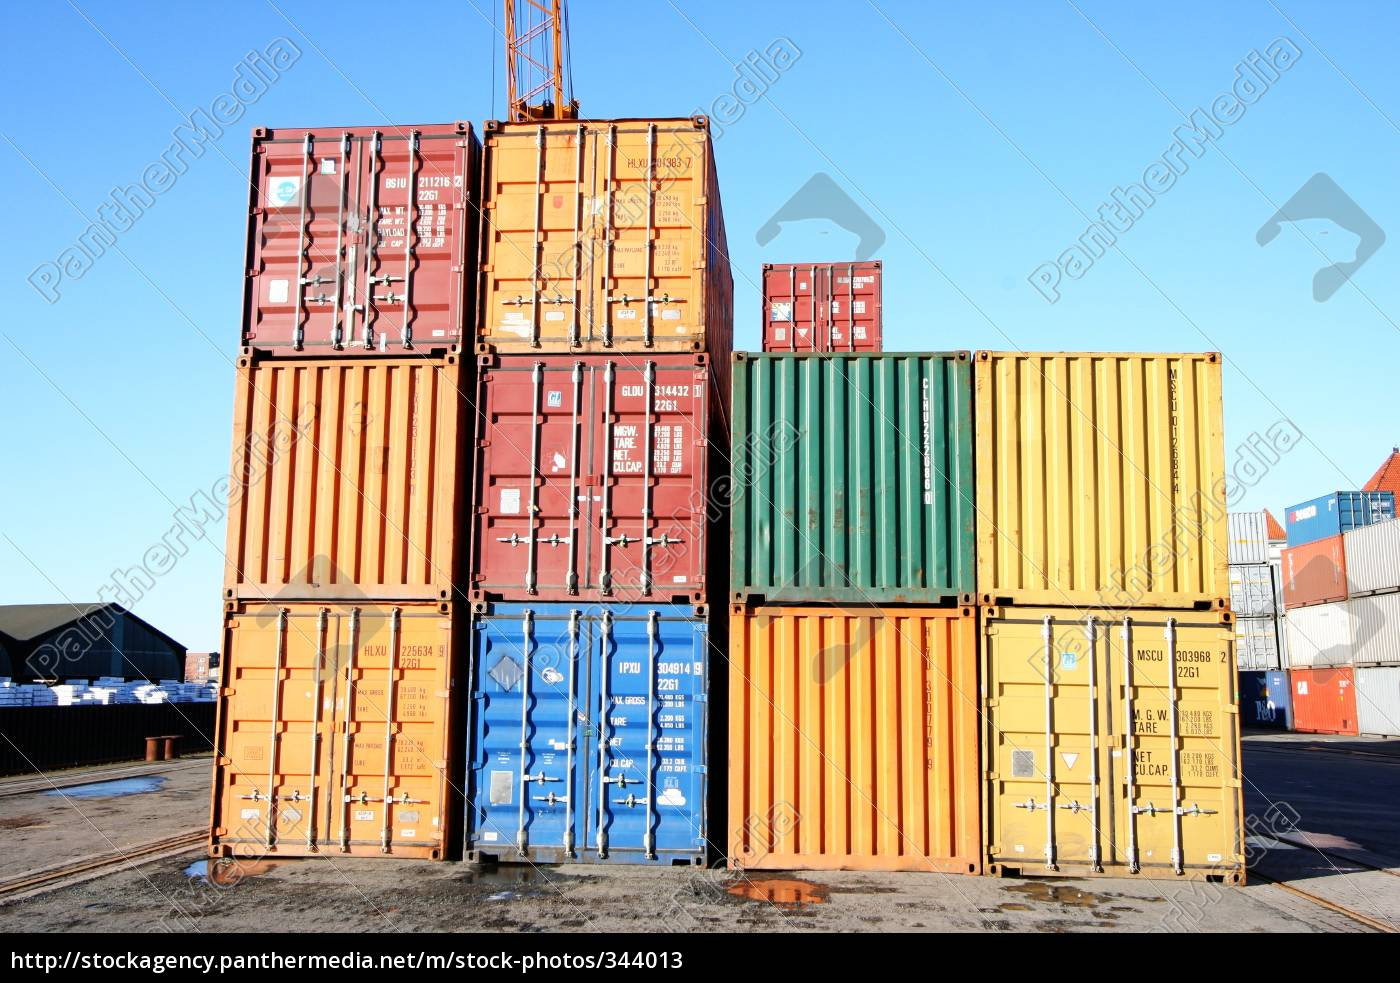 container - 344013